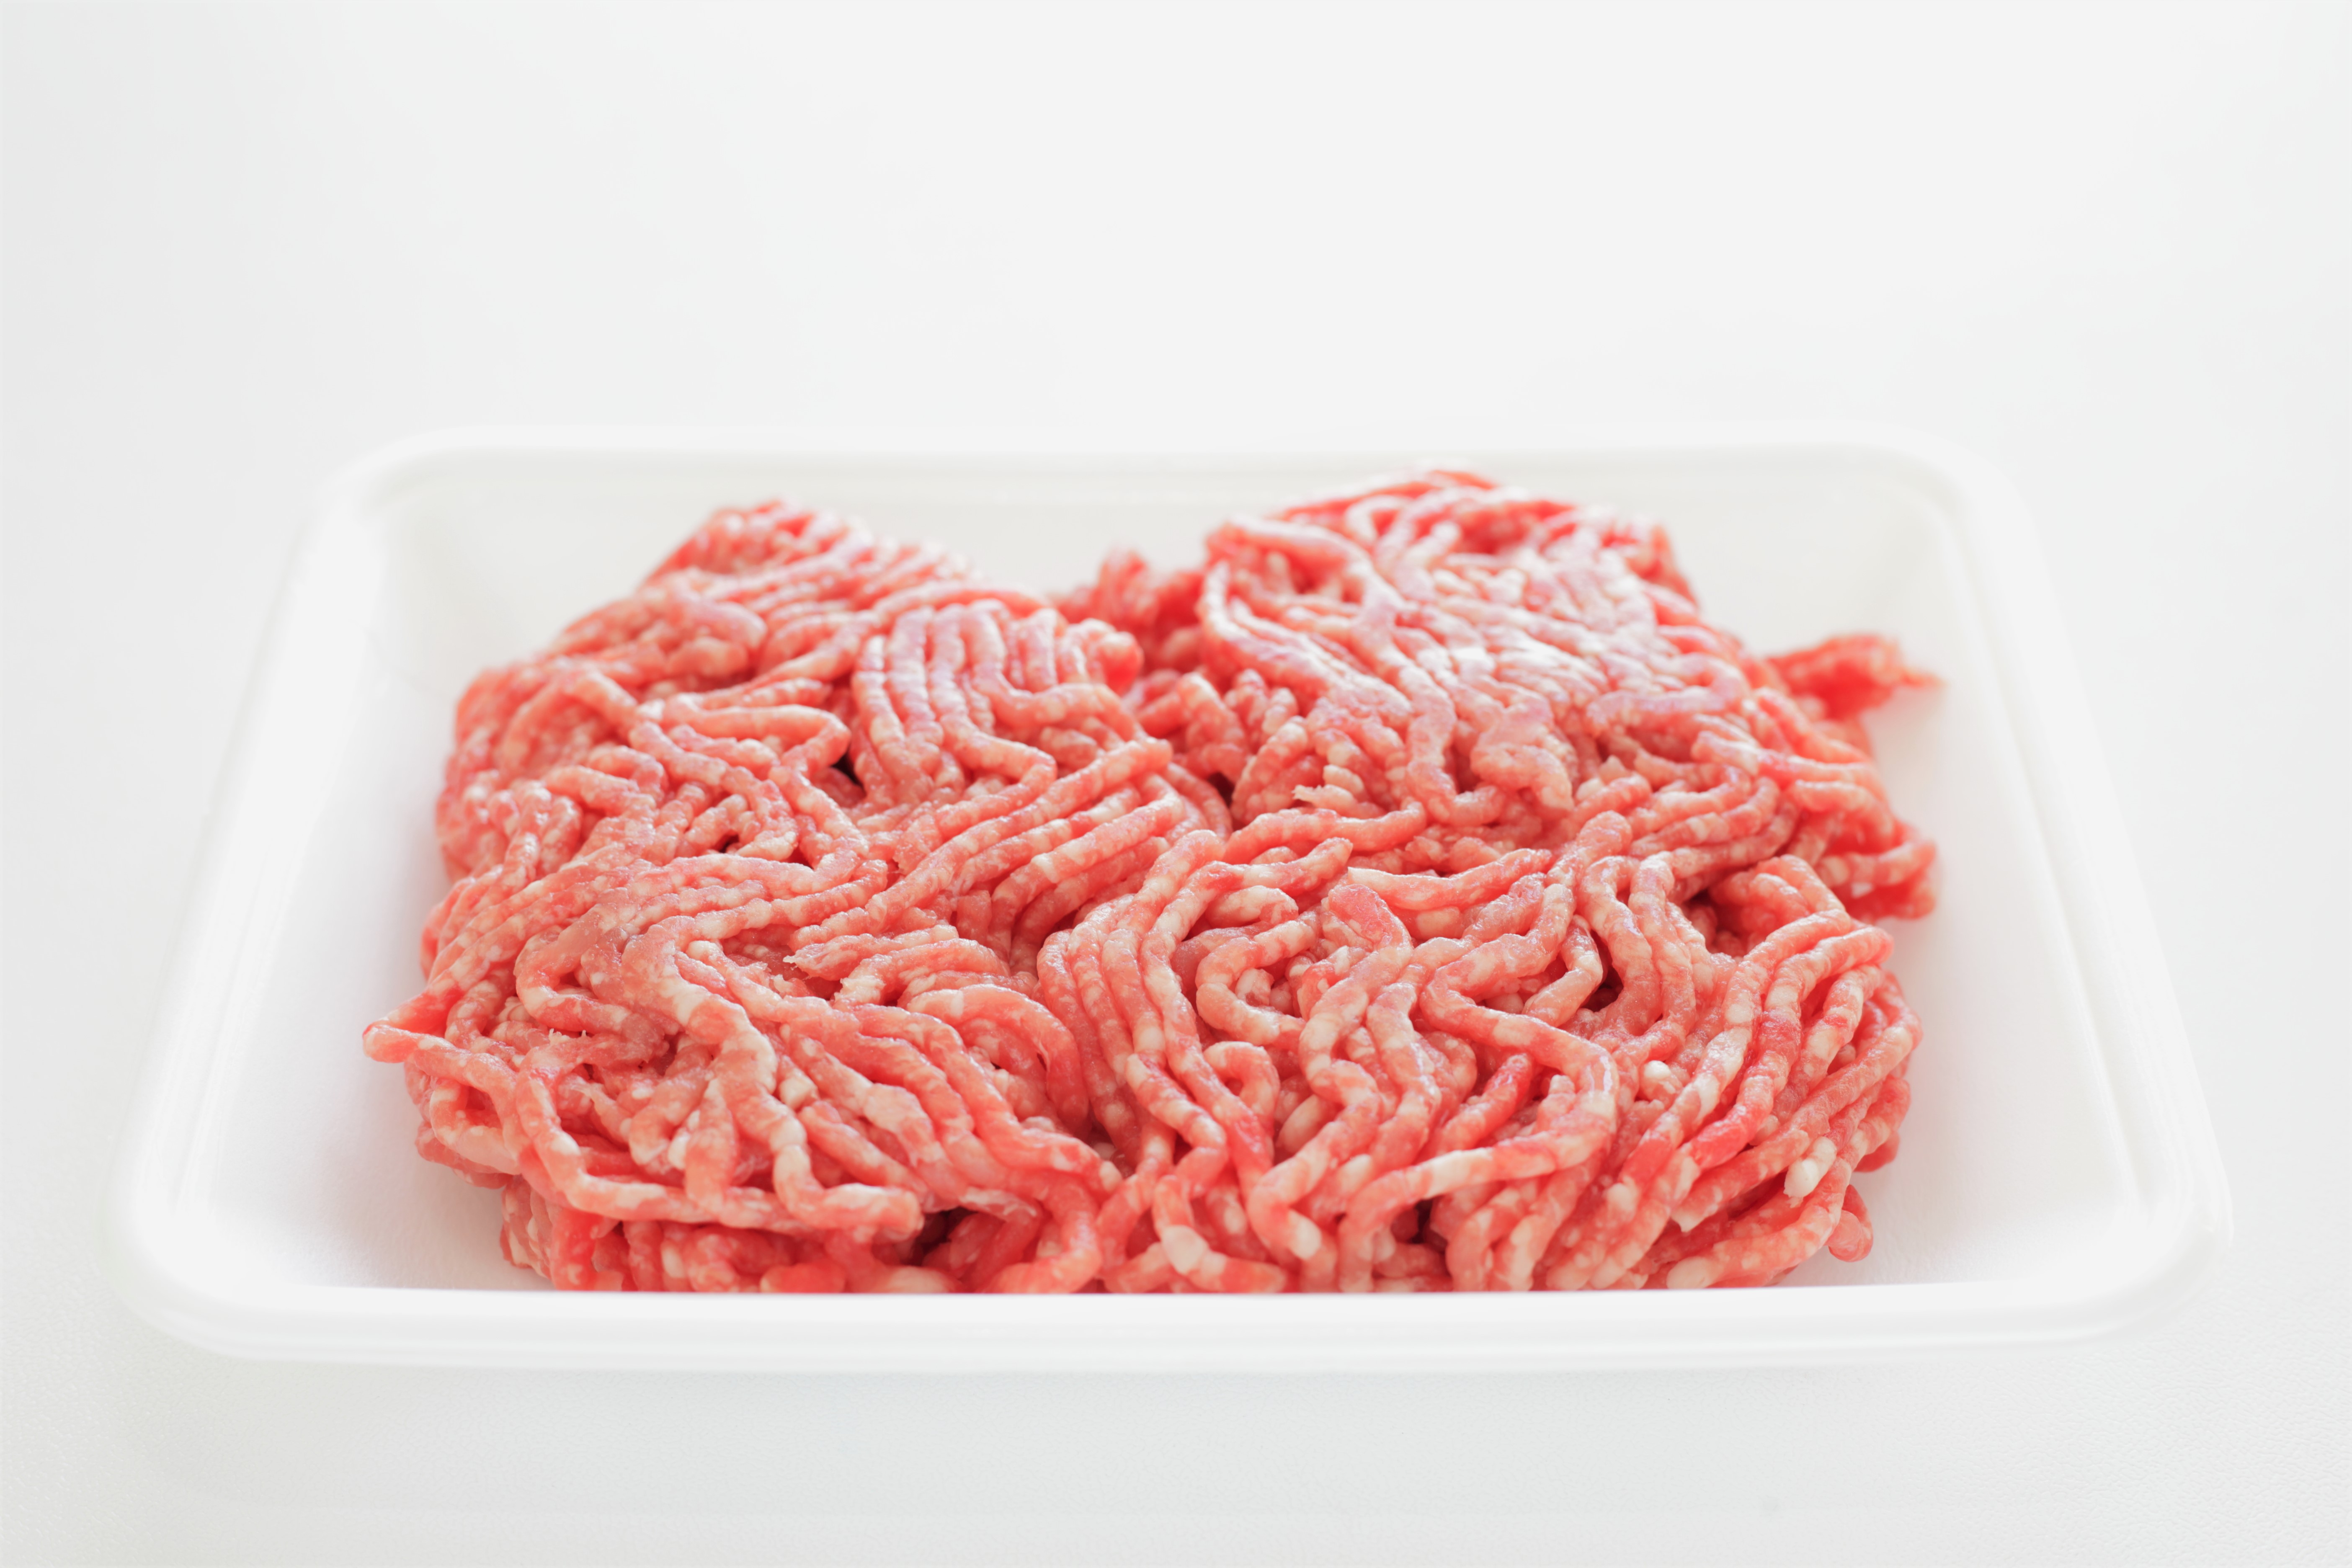 Ground Meat Packaged Raw